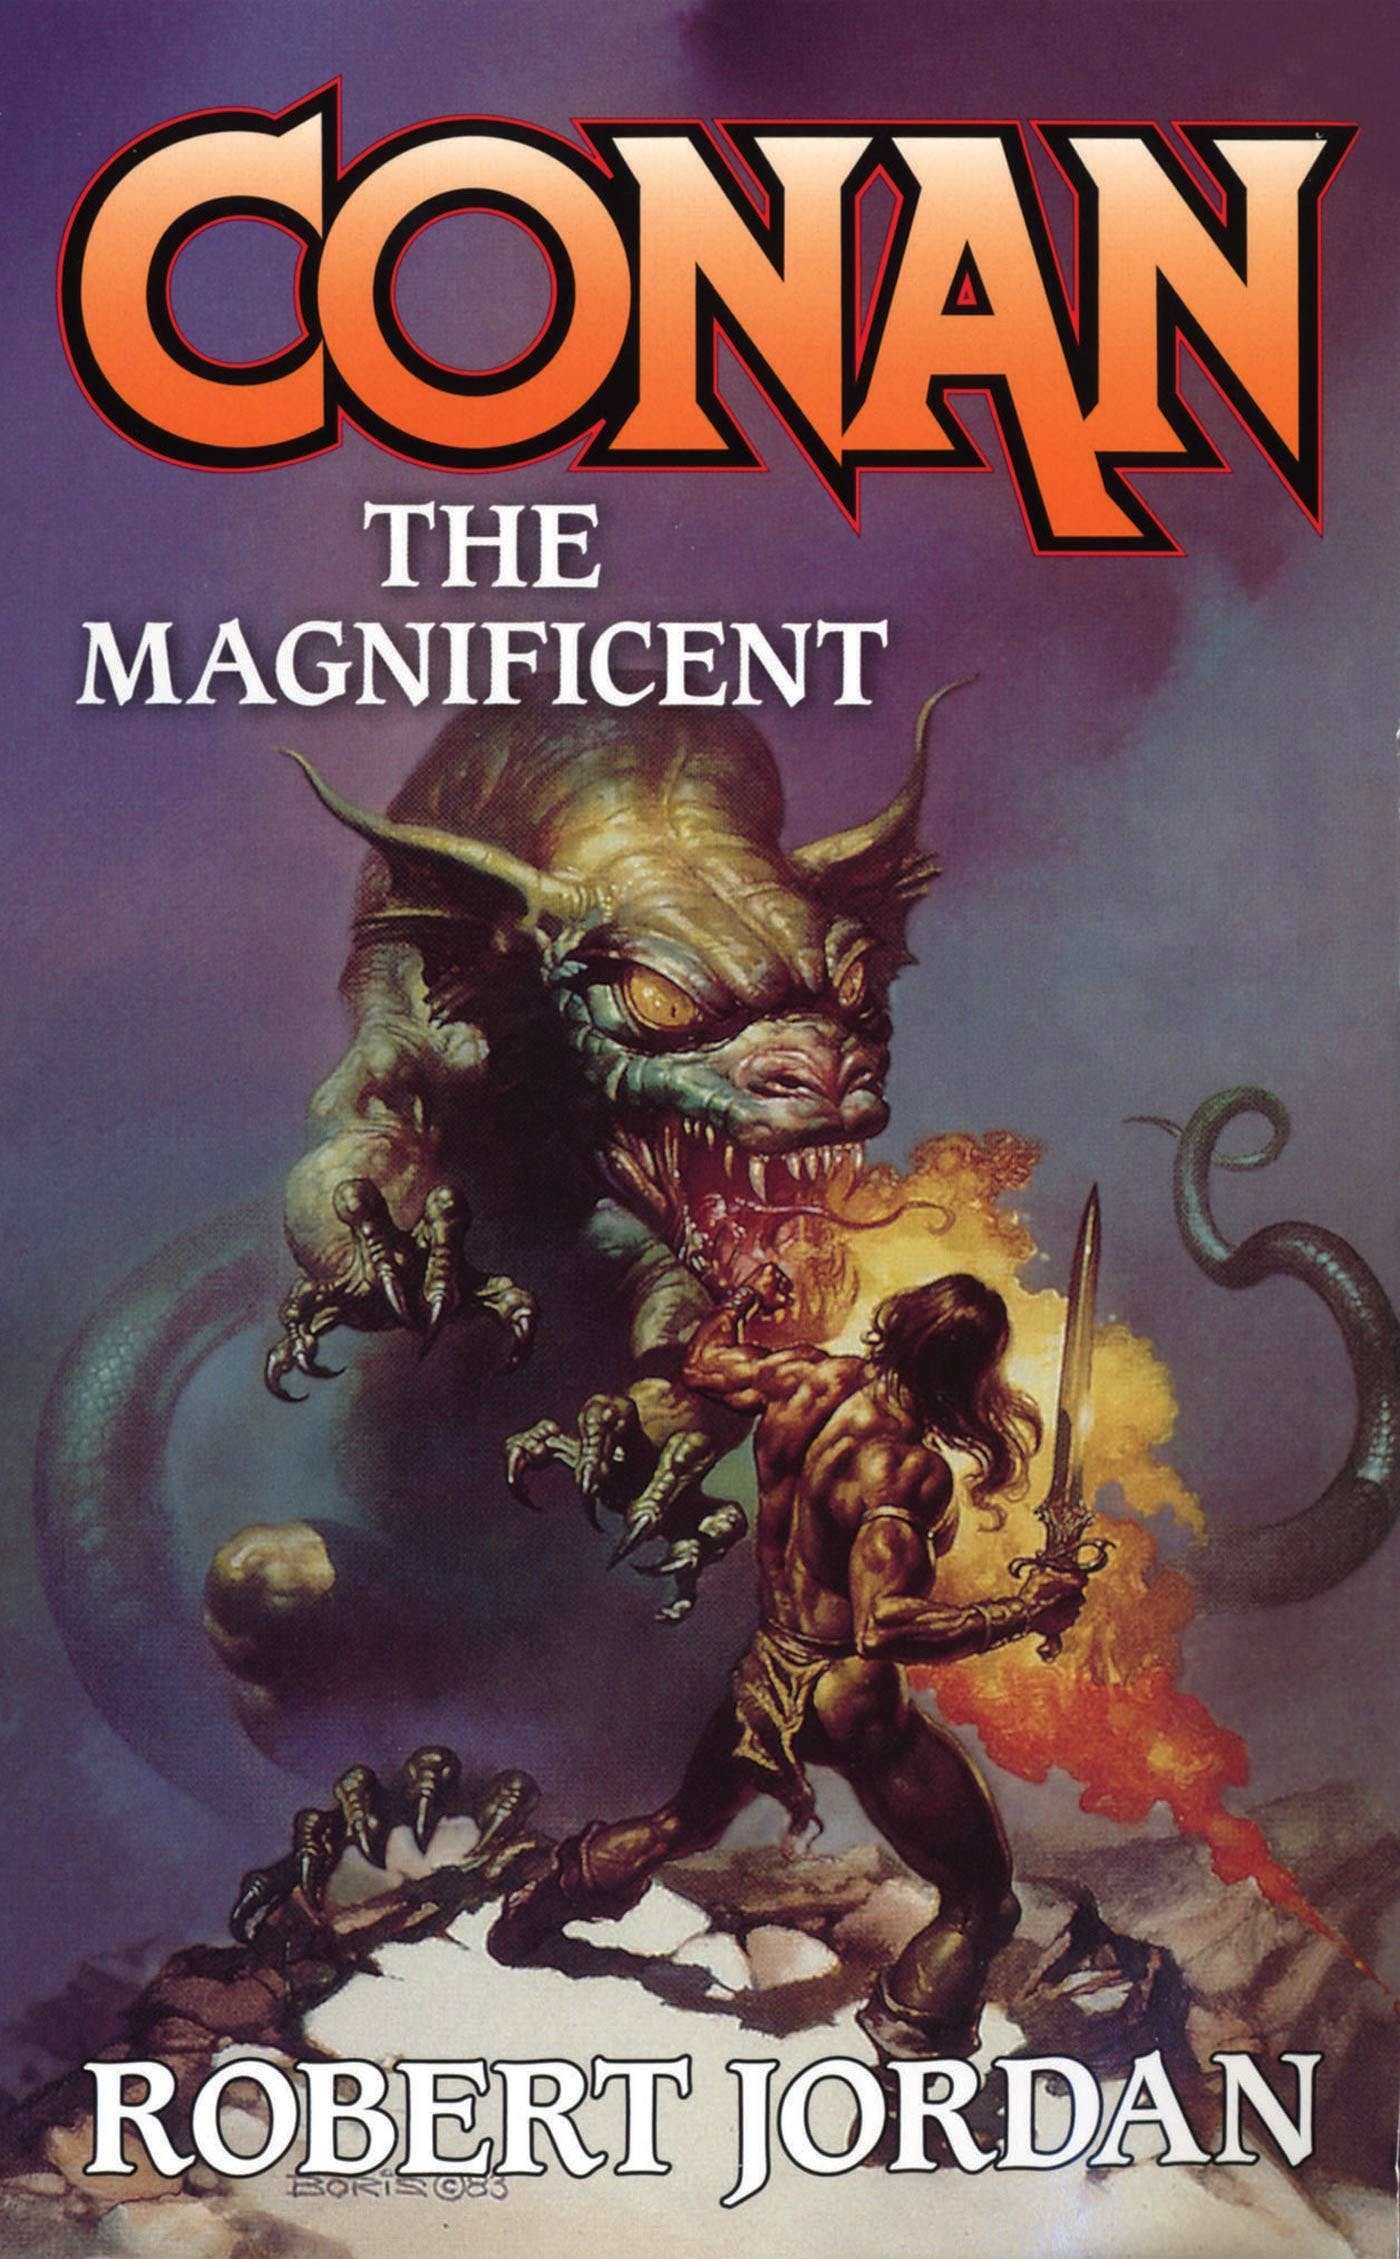 Image of Conan The Magnificent